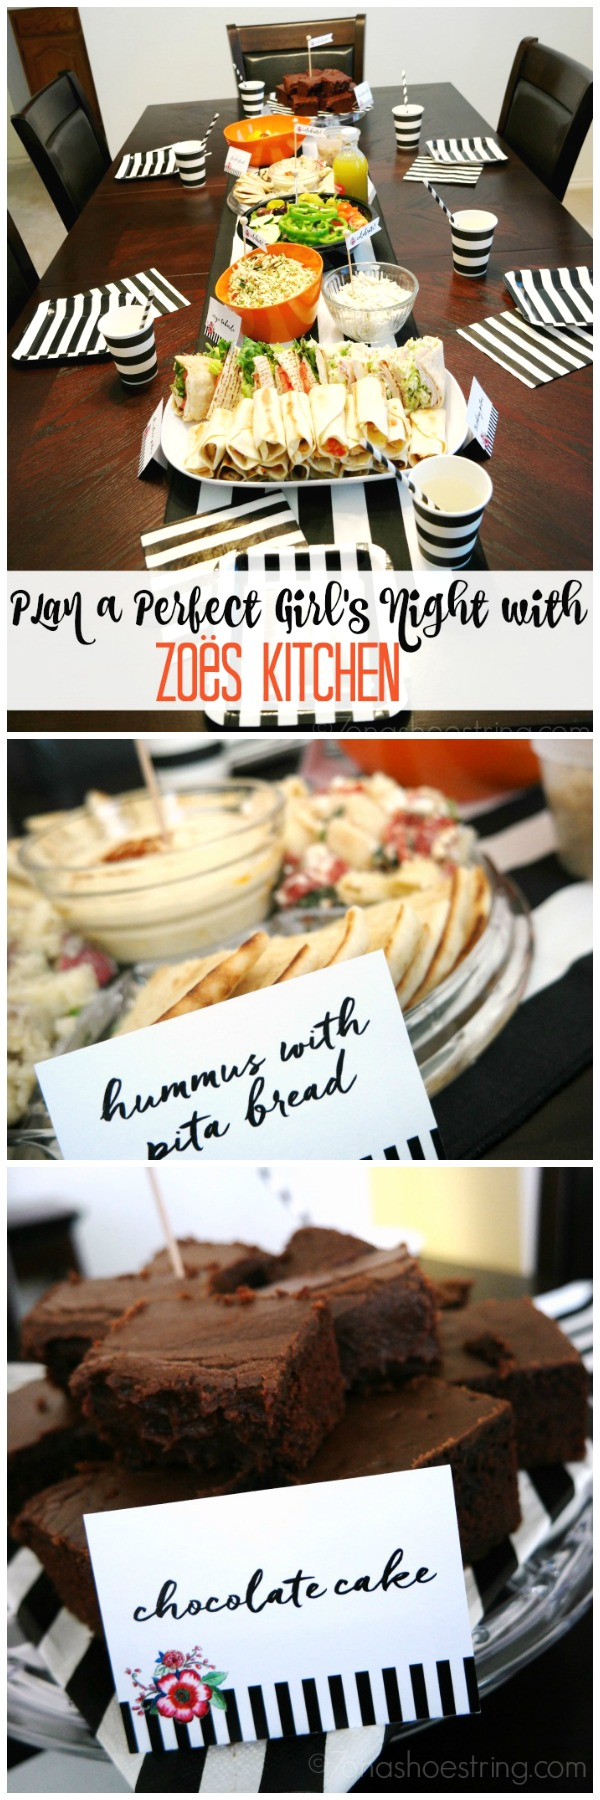 Plan a Perfect Girls' Night with Zoës Kitchen Catering #ZoesCaters #ad